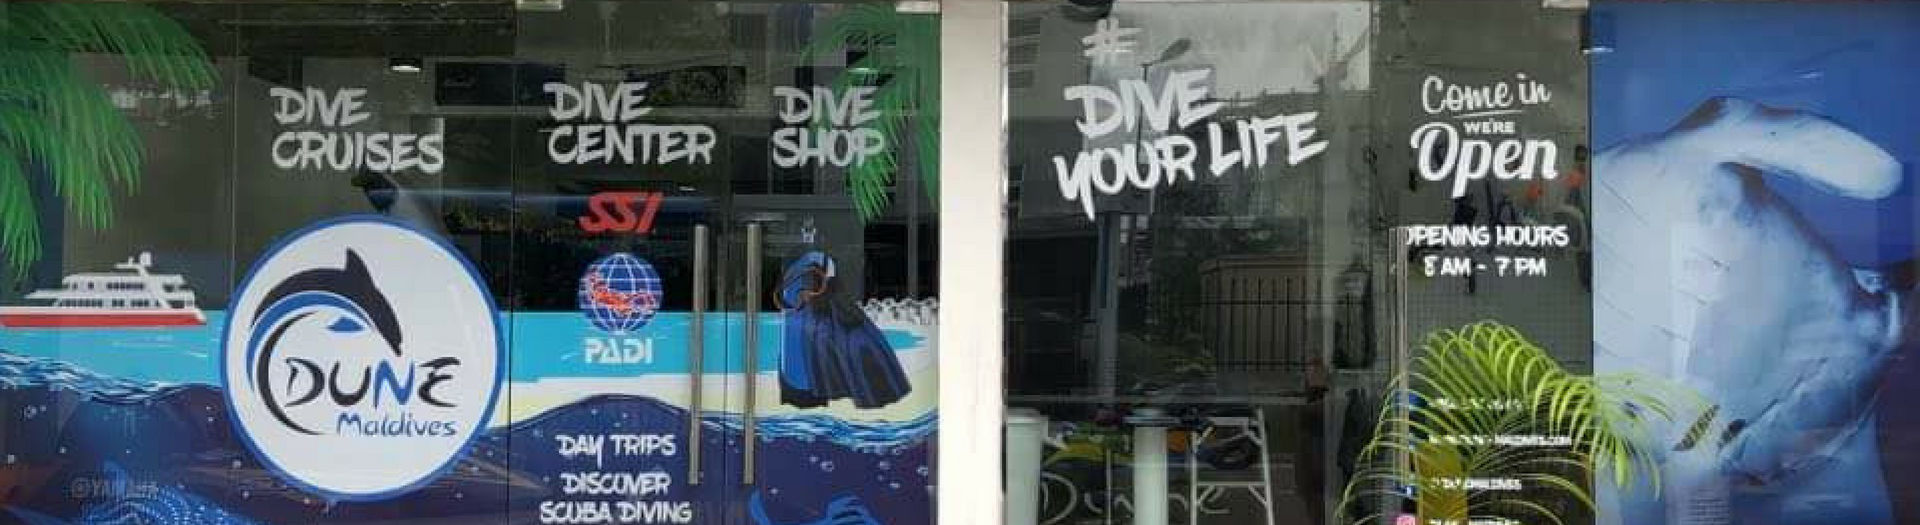 Diving center in Maldives